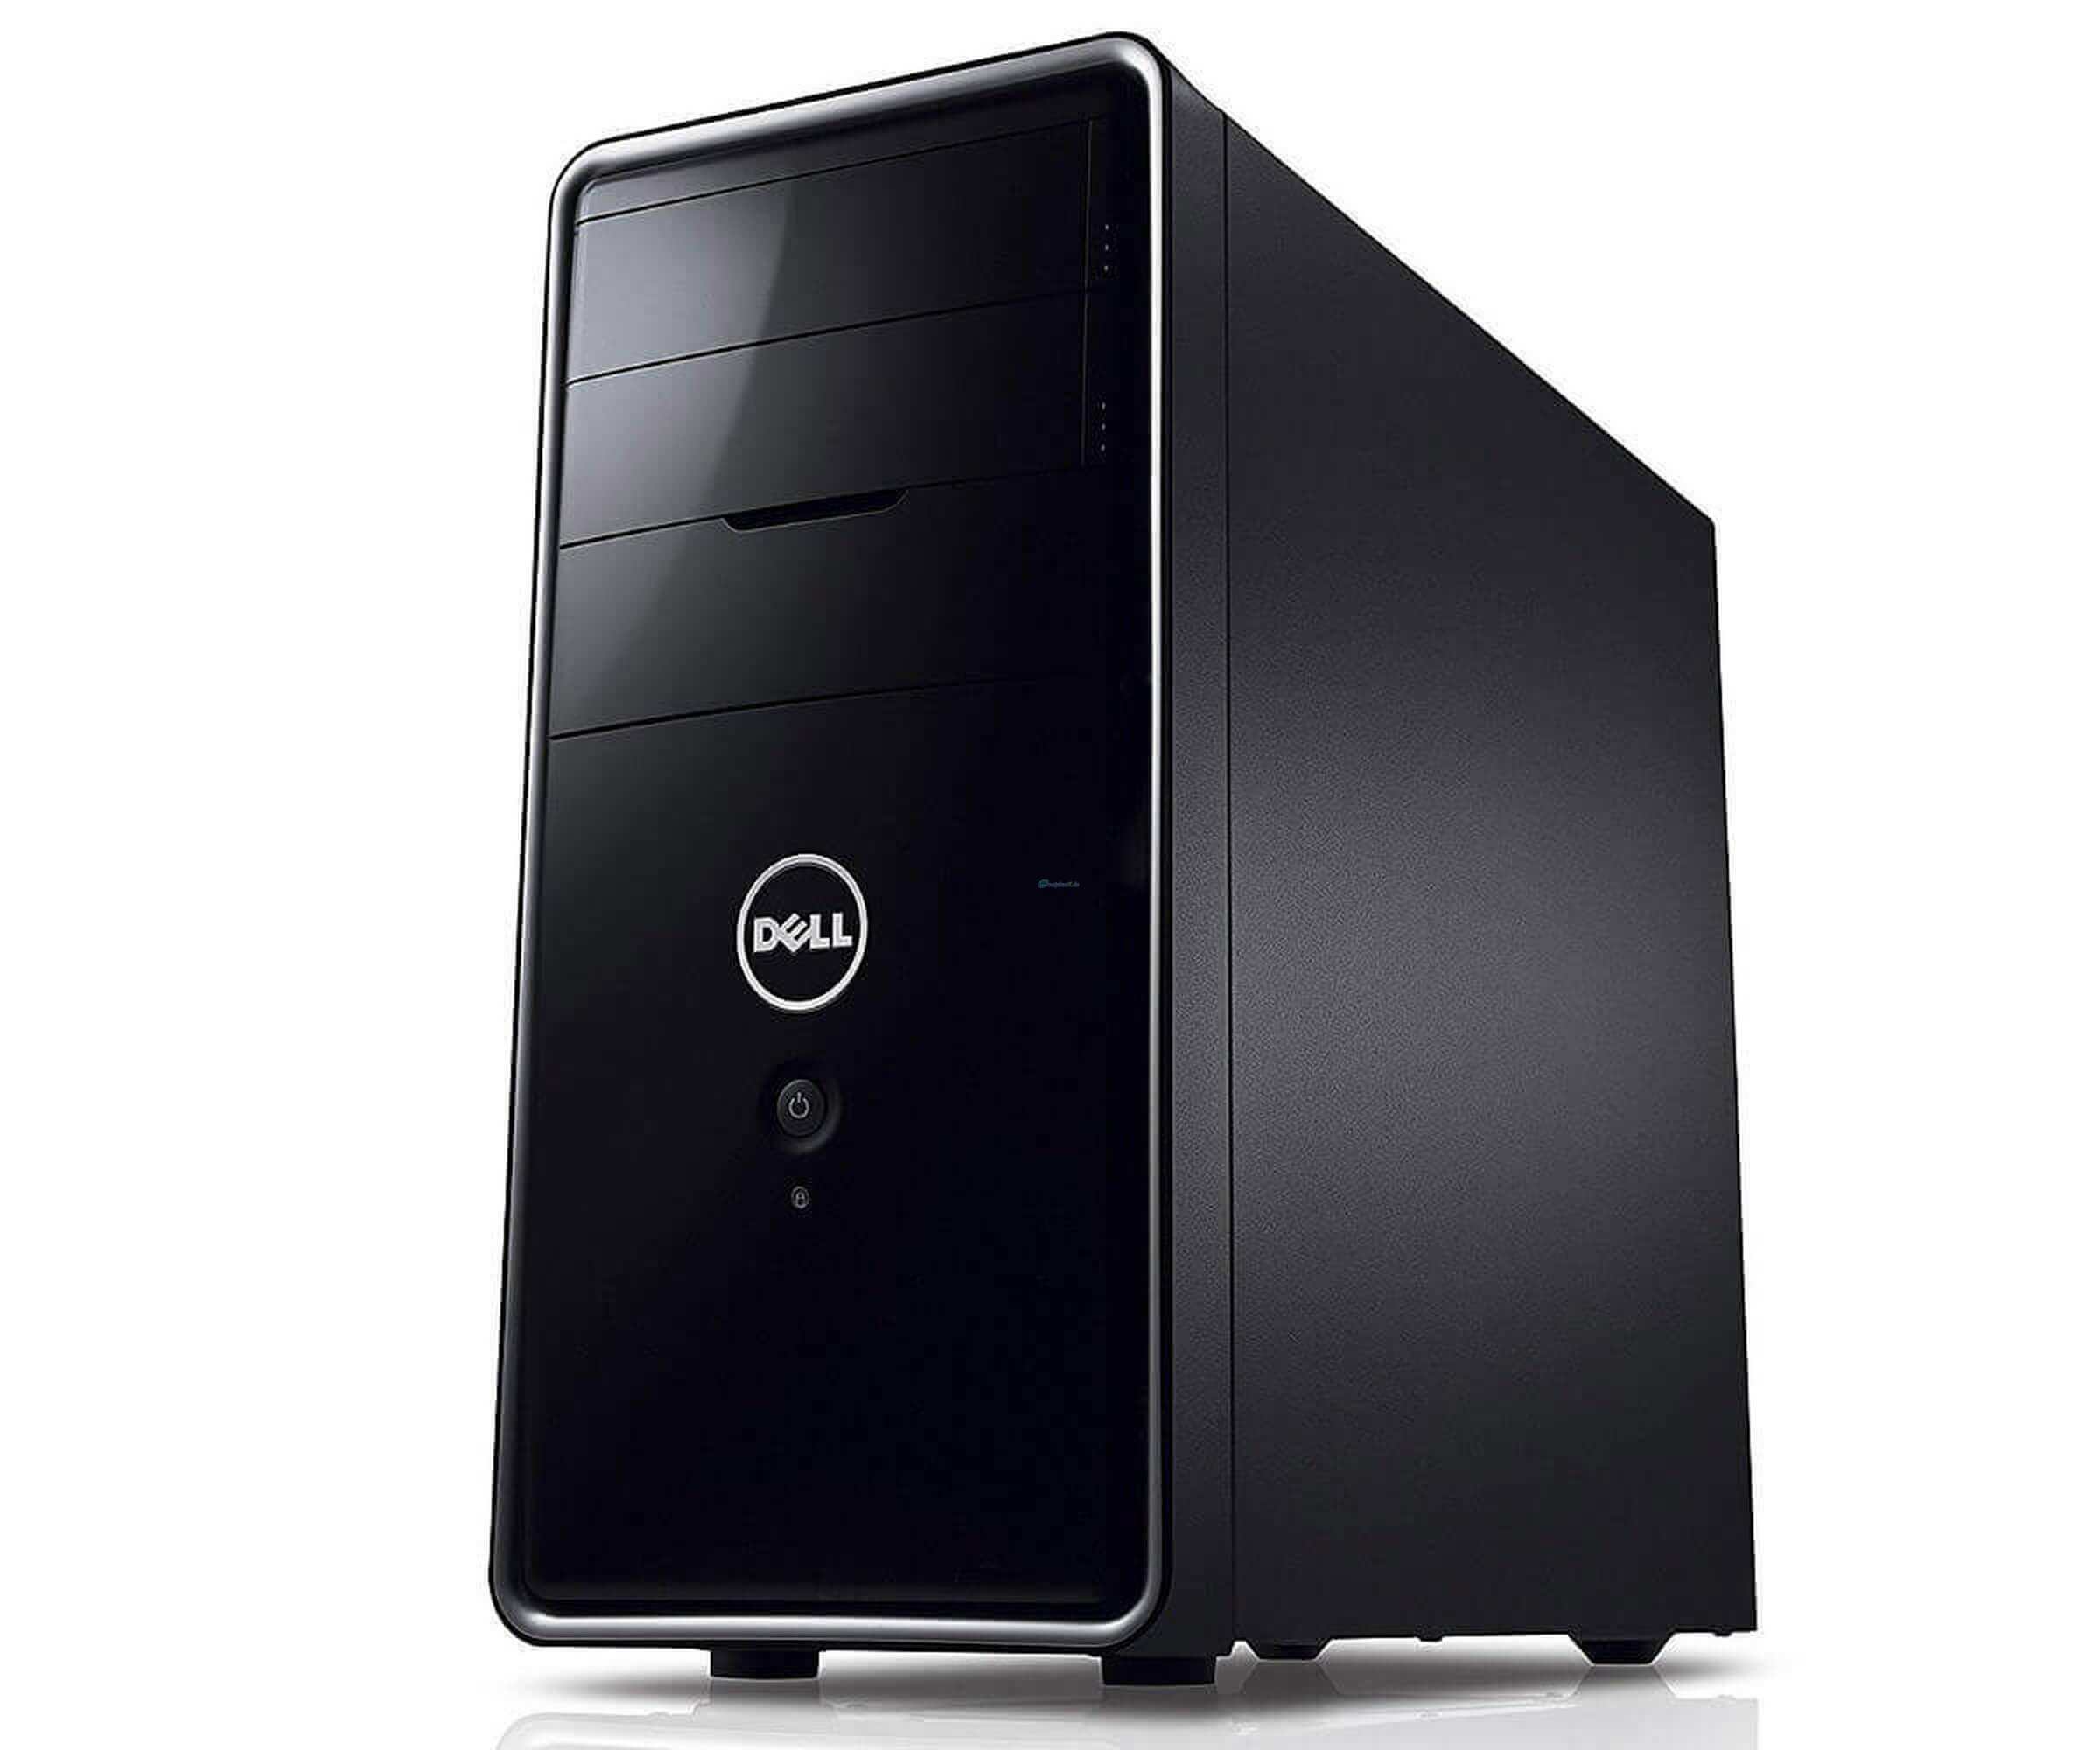 PC Systeme, Computer - Dell Inspiron 660 Core i5 3340 3.10 GHz RAM 4 GB 250 GB HDD Win 7  - Onlineshop Noteboox.de